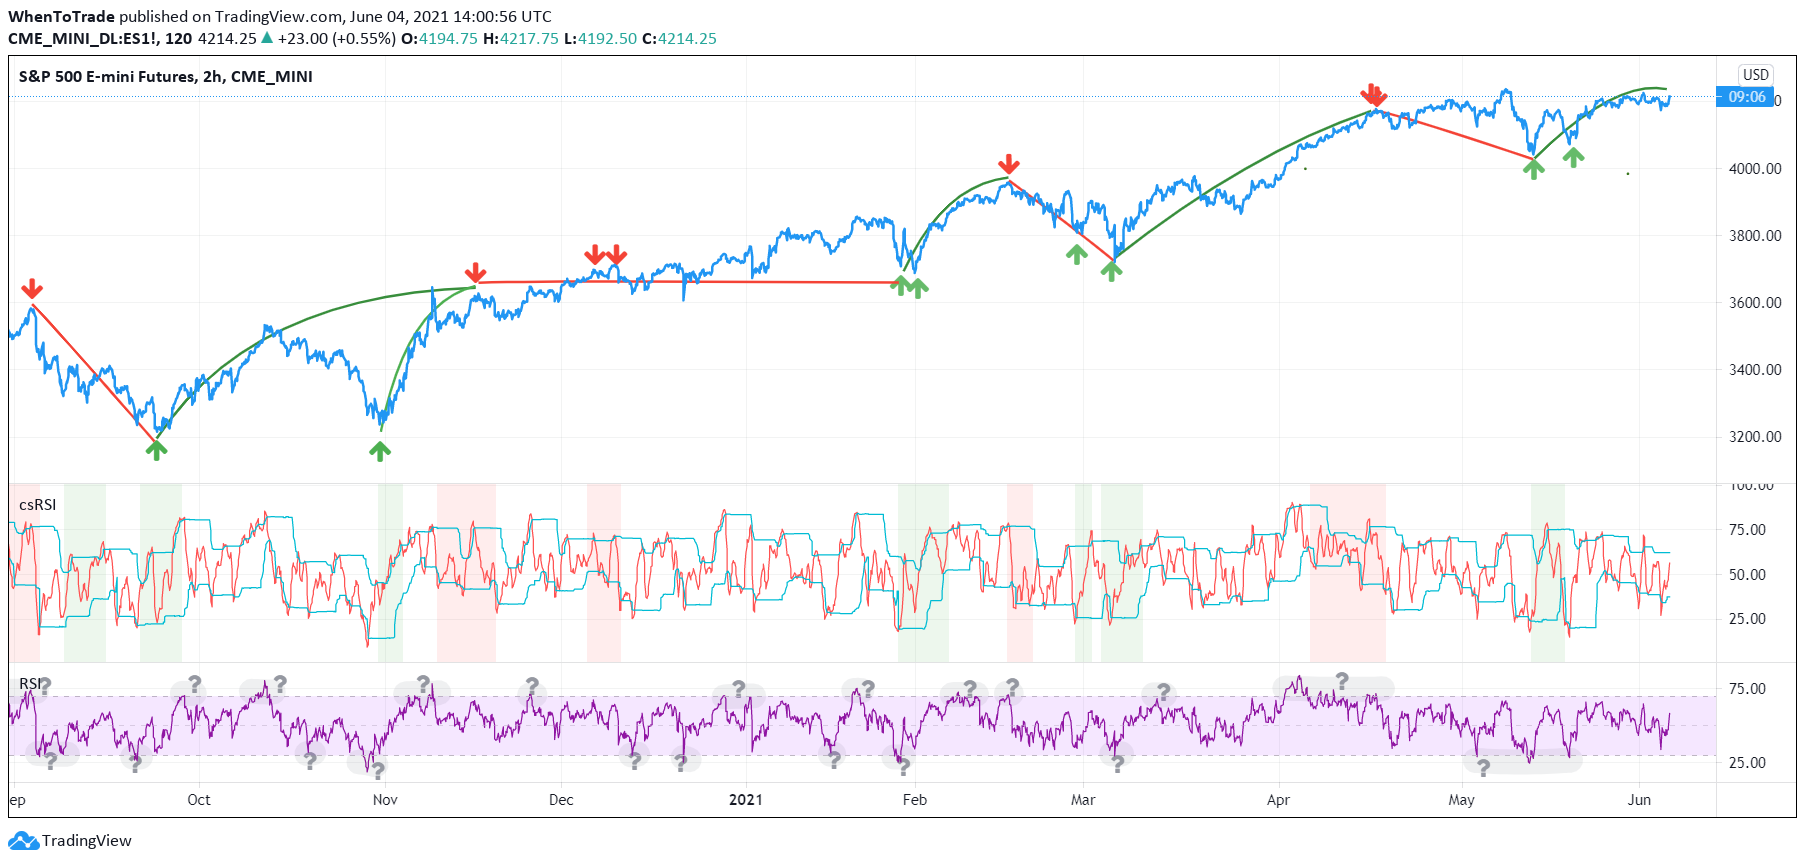 Cyclic Smoothed RSI Indicator with Mulit-Timeframe filtering